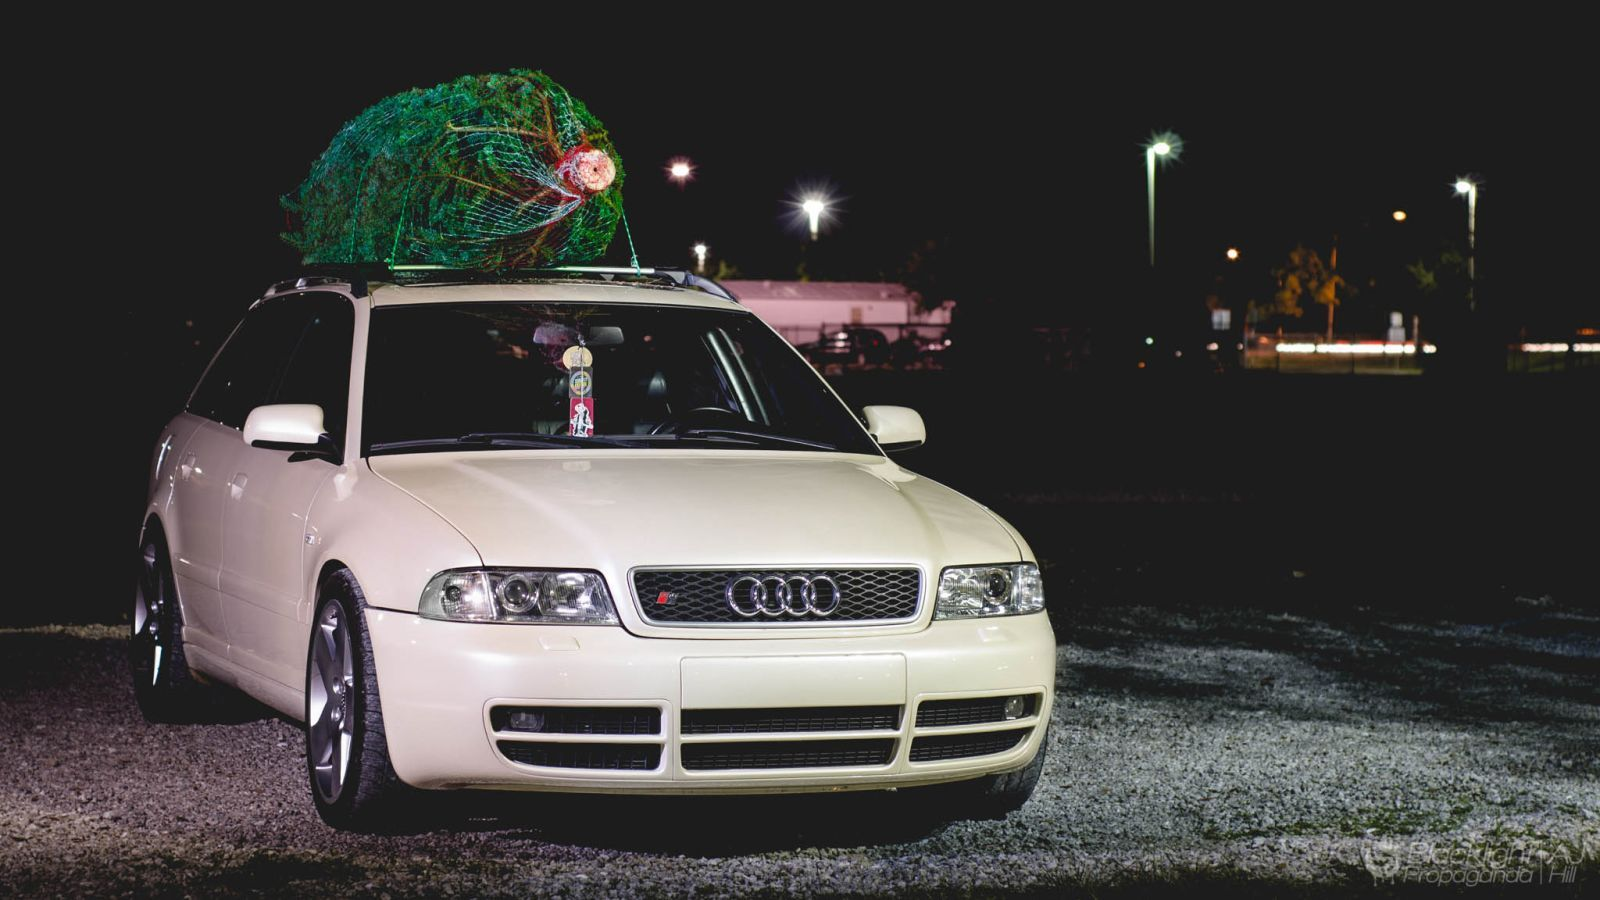 Here Are Some Handy Tips For Securing A Christmas Tree To Your Car